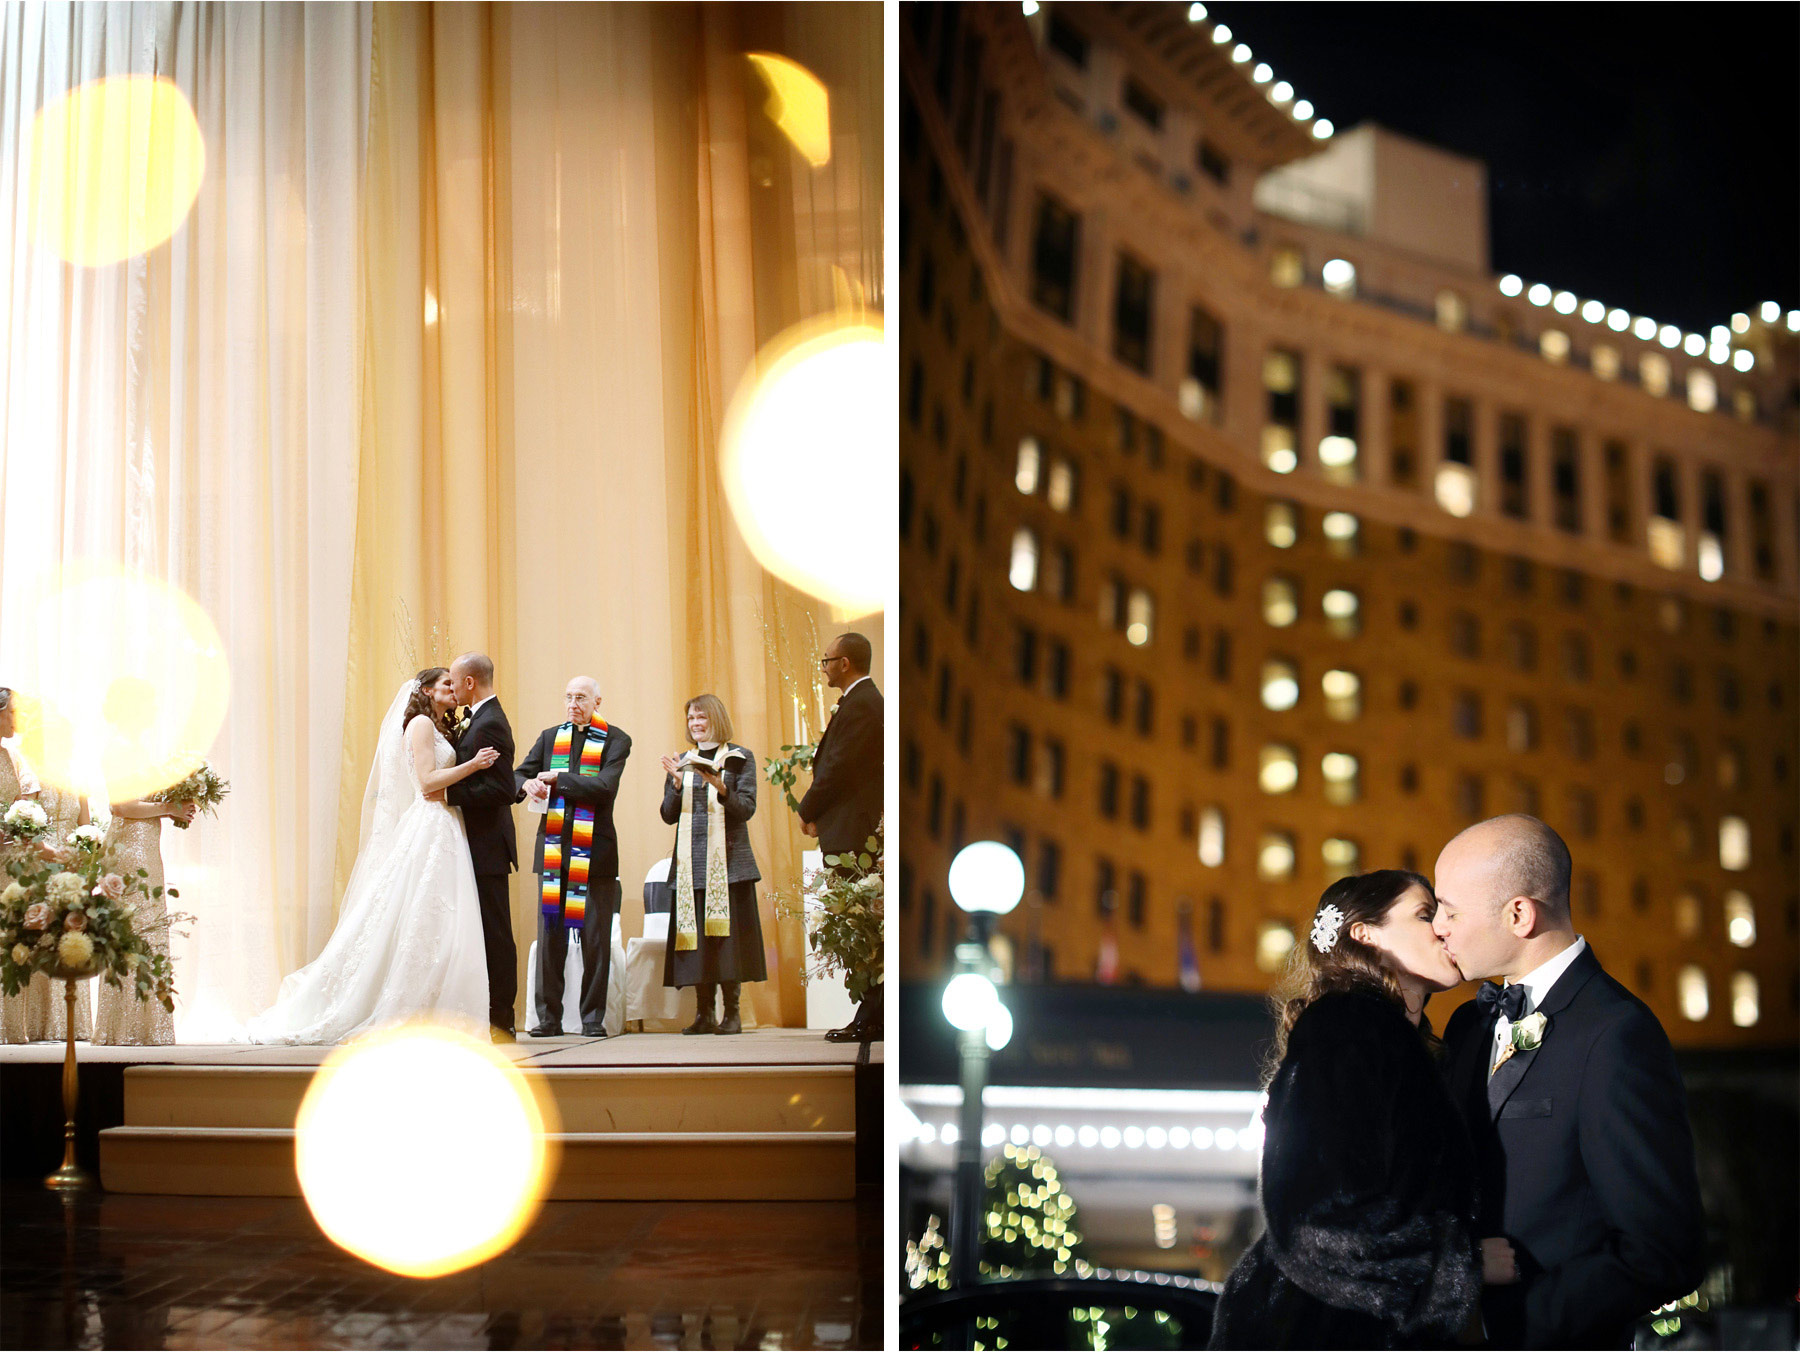 16-Saint-Paul-Minnesota-Wedding-Photographer-by-Andrew-Vick-Photography-Winter-New-Years-Eve-Landmark-Center-Ceremony-Bride-Groom-Kiss-Fur-Coat-Night-Emily-and-Michael.jpg